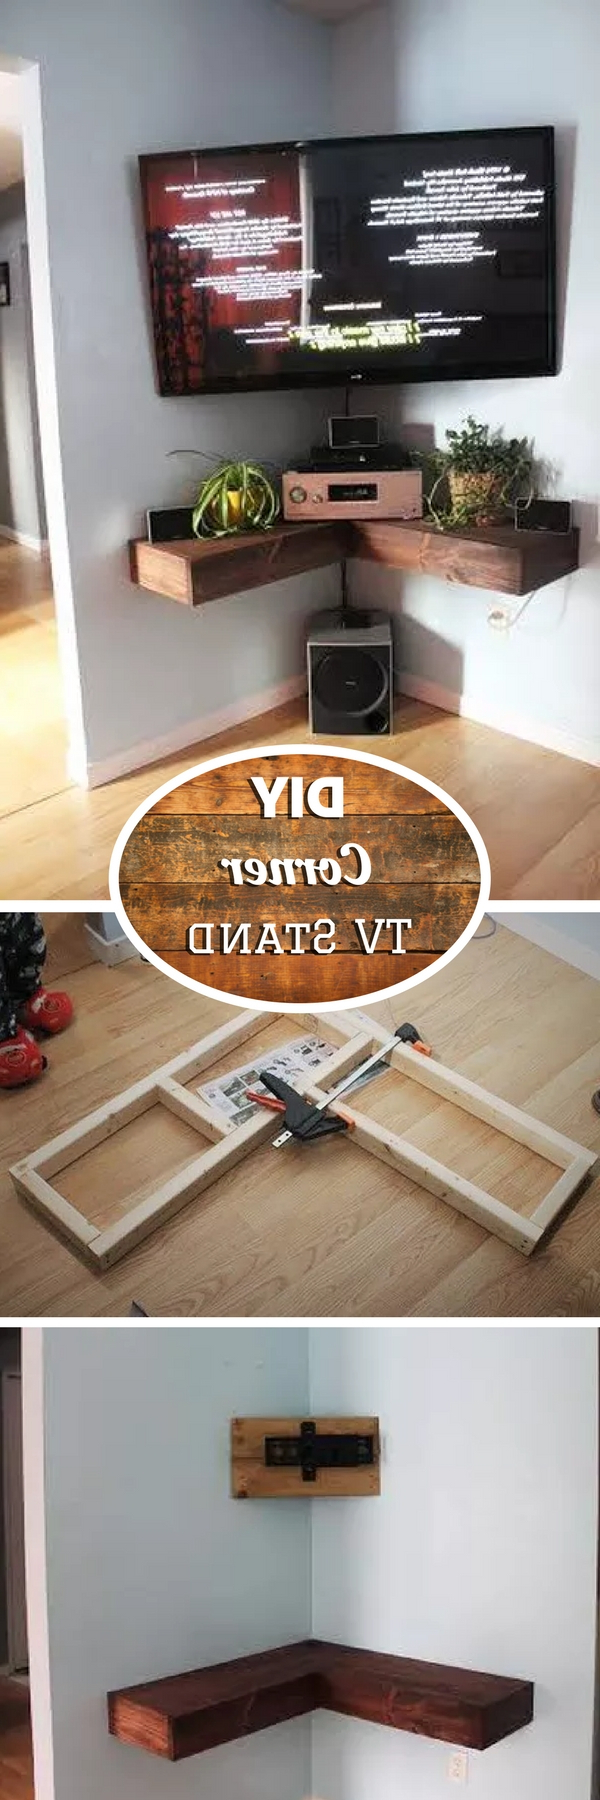 21+ Diy Tv Stand Ideas For Your Weekend Home Project Intended For Fashionable Triangular Tv Stands (Gallery 15 of 20)